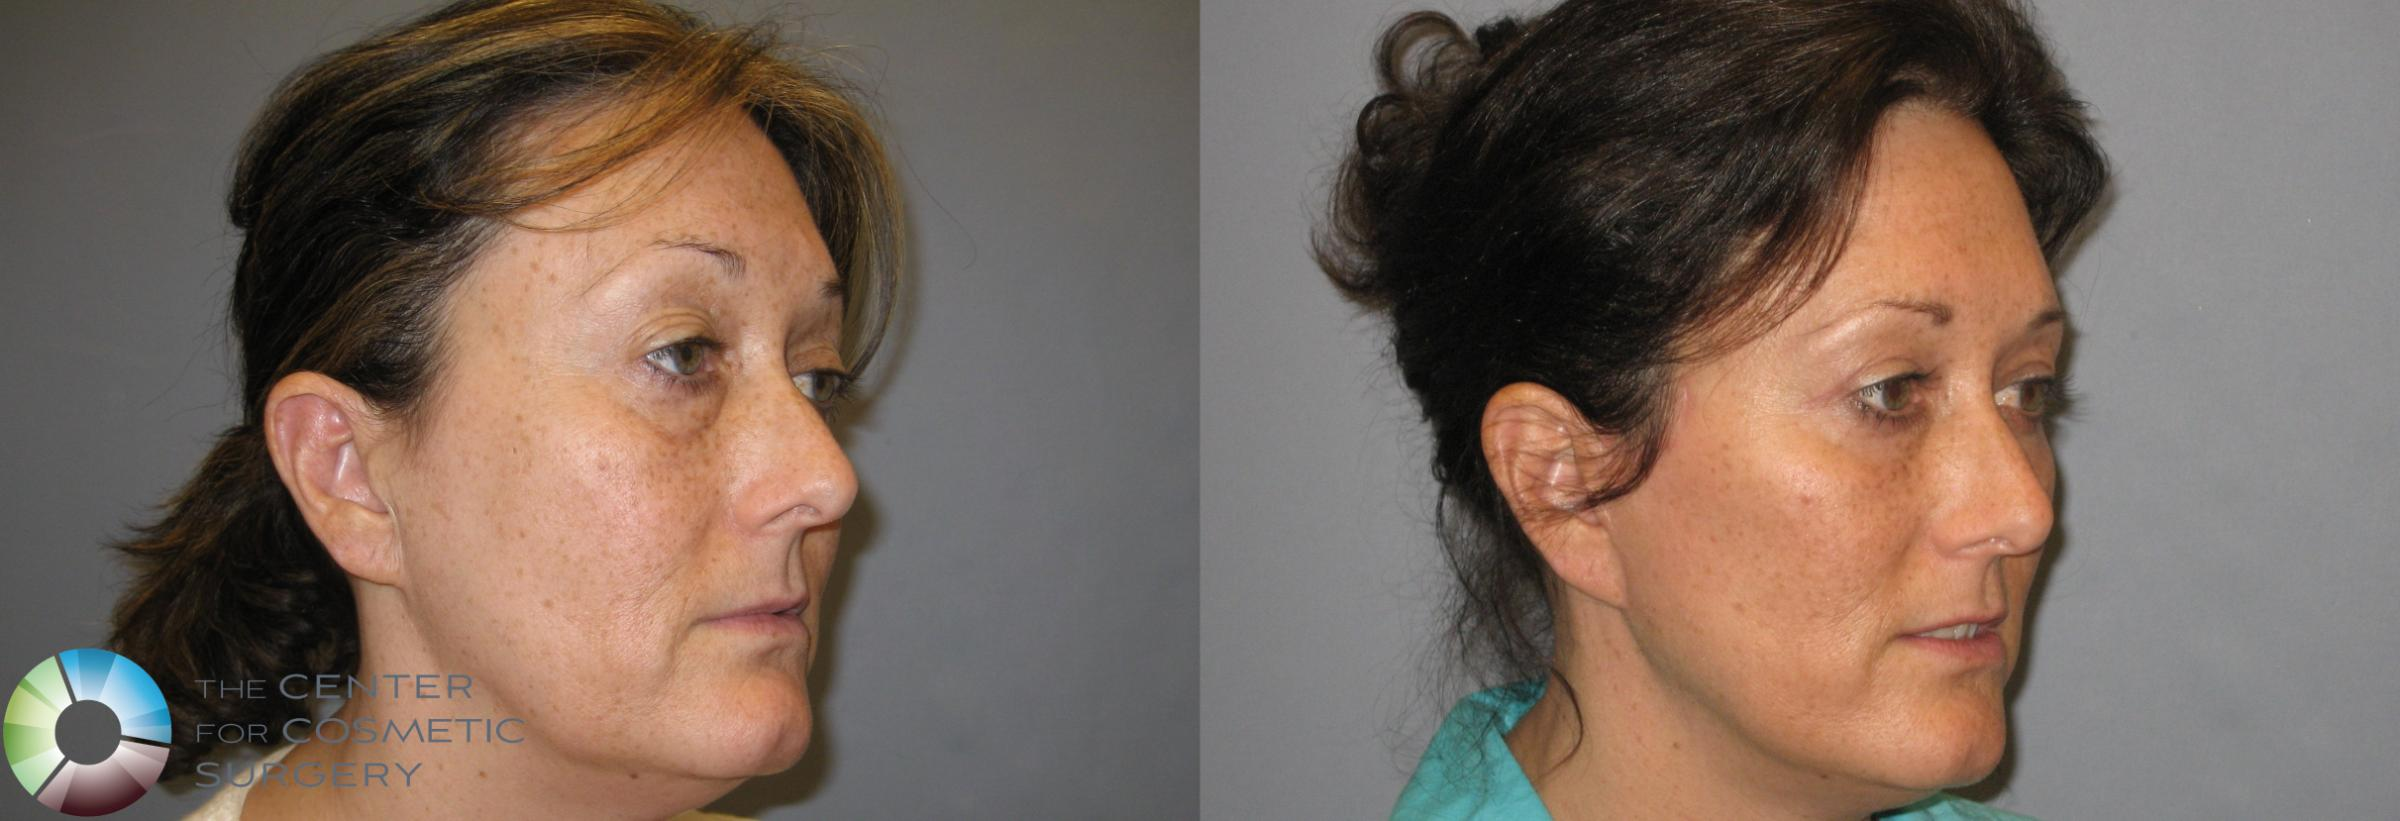 Eyelid Lift Case 161 Before & After View #4 | Golden, CO | The Center for Cosmetic Surgery